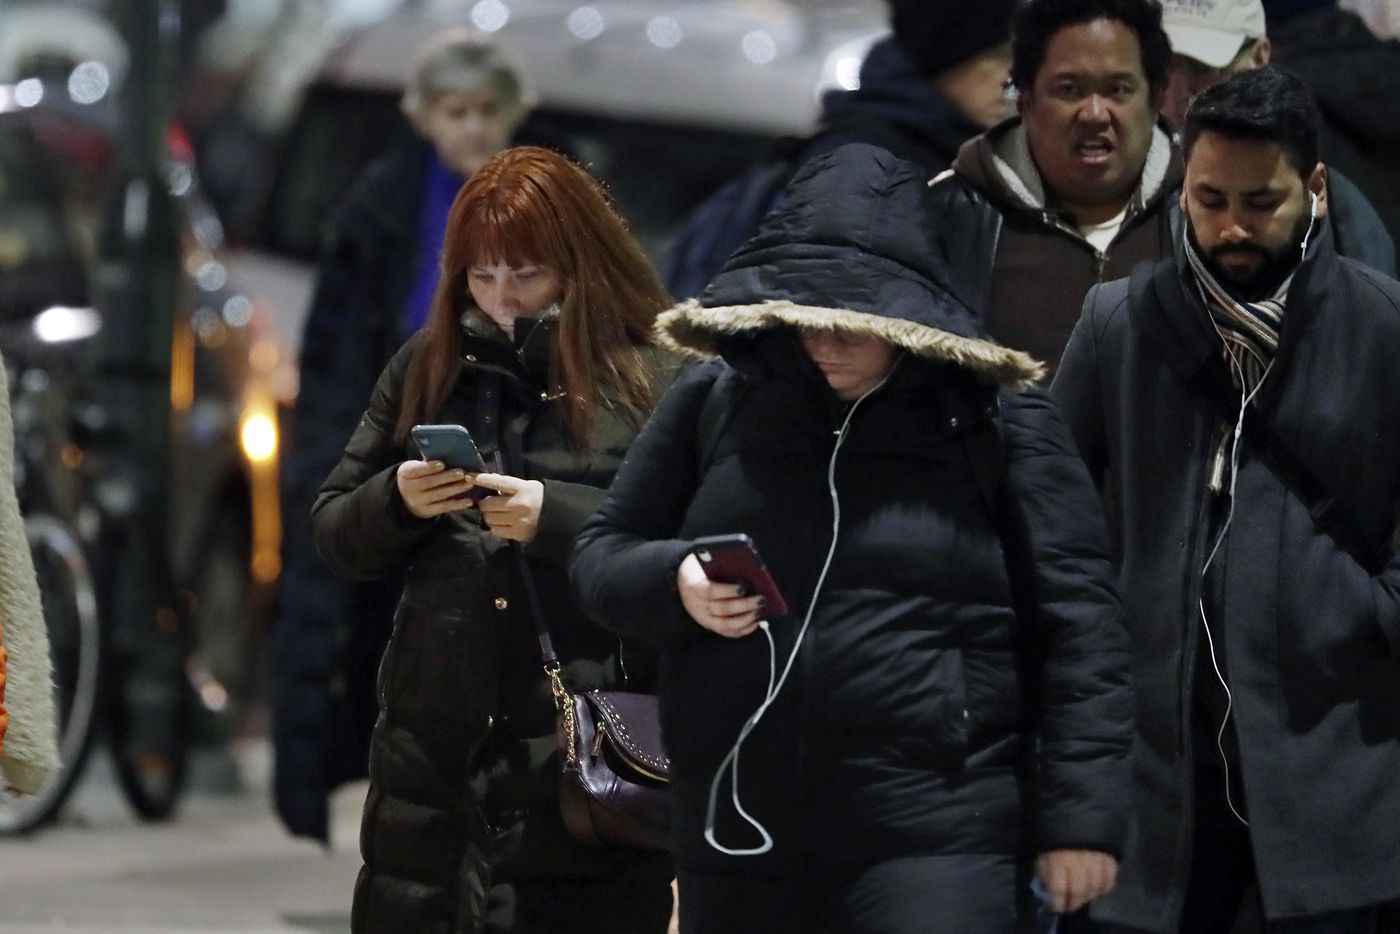 People engaged with their cell phones wait to cross Market Street during the evening rush hour.